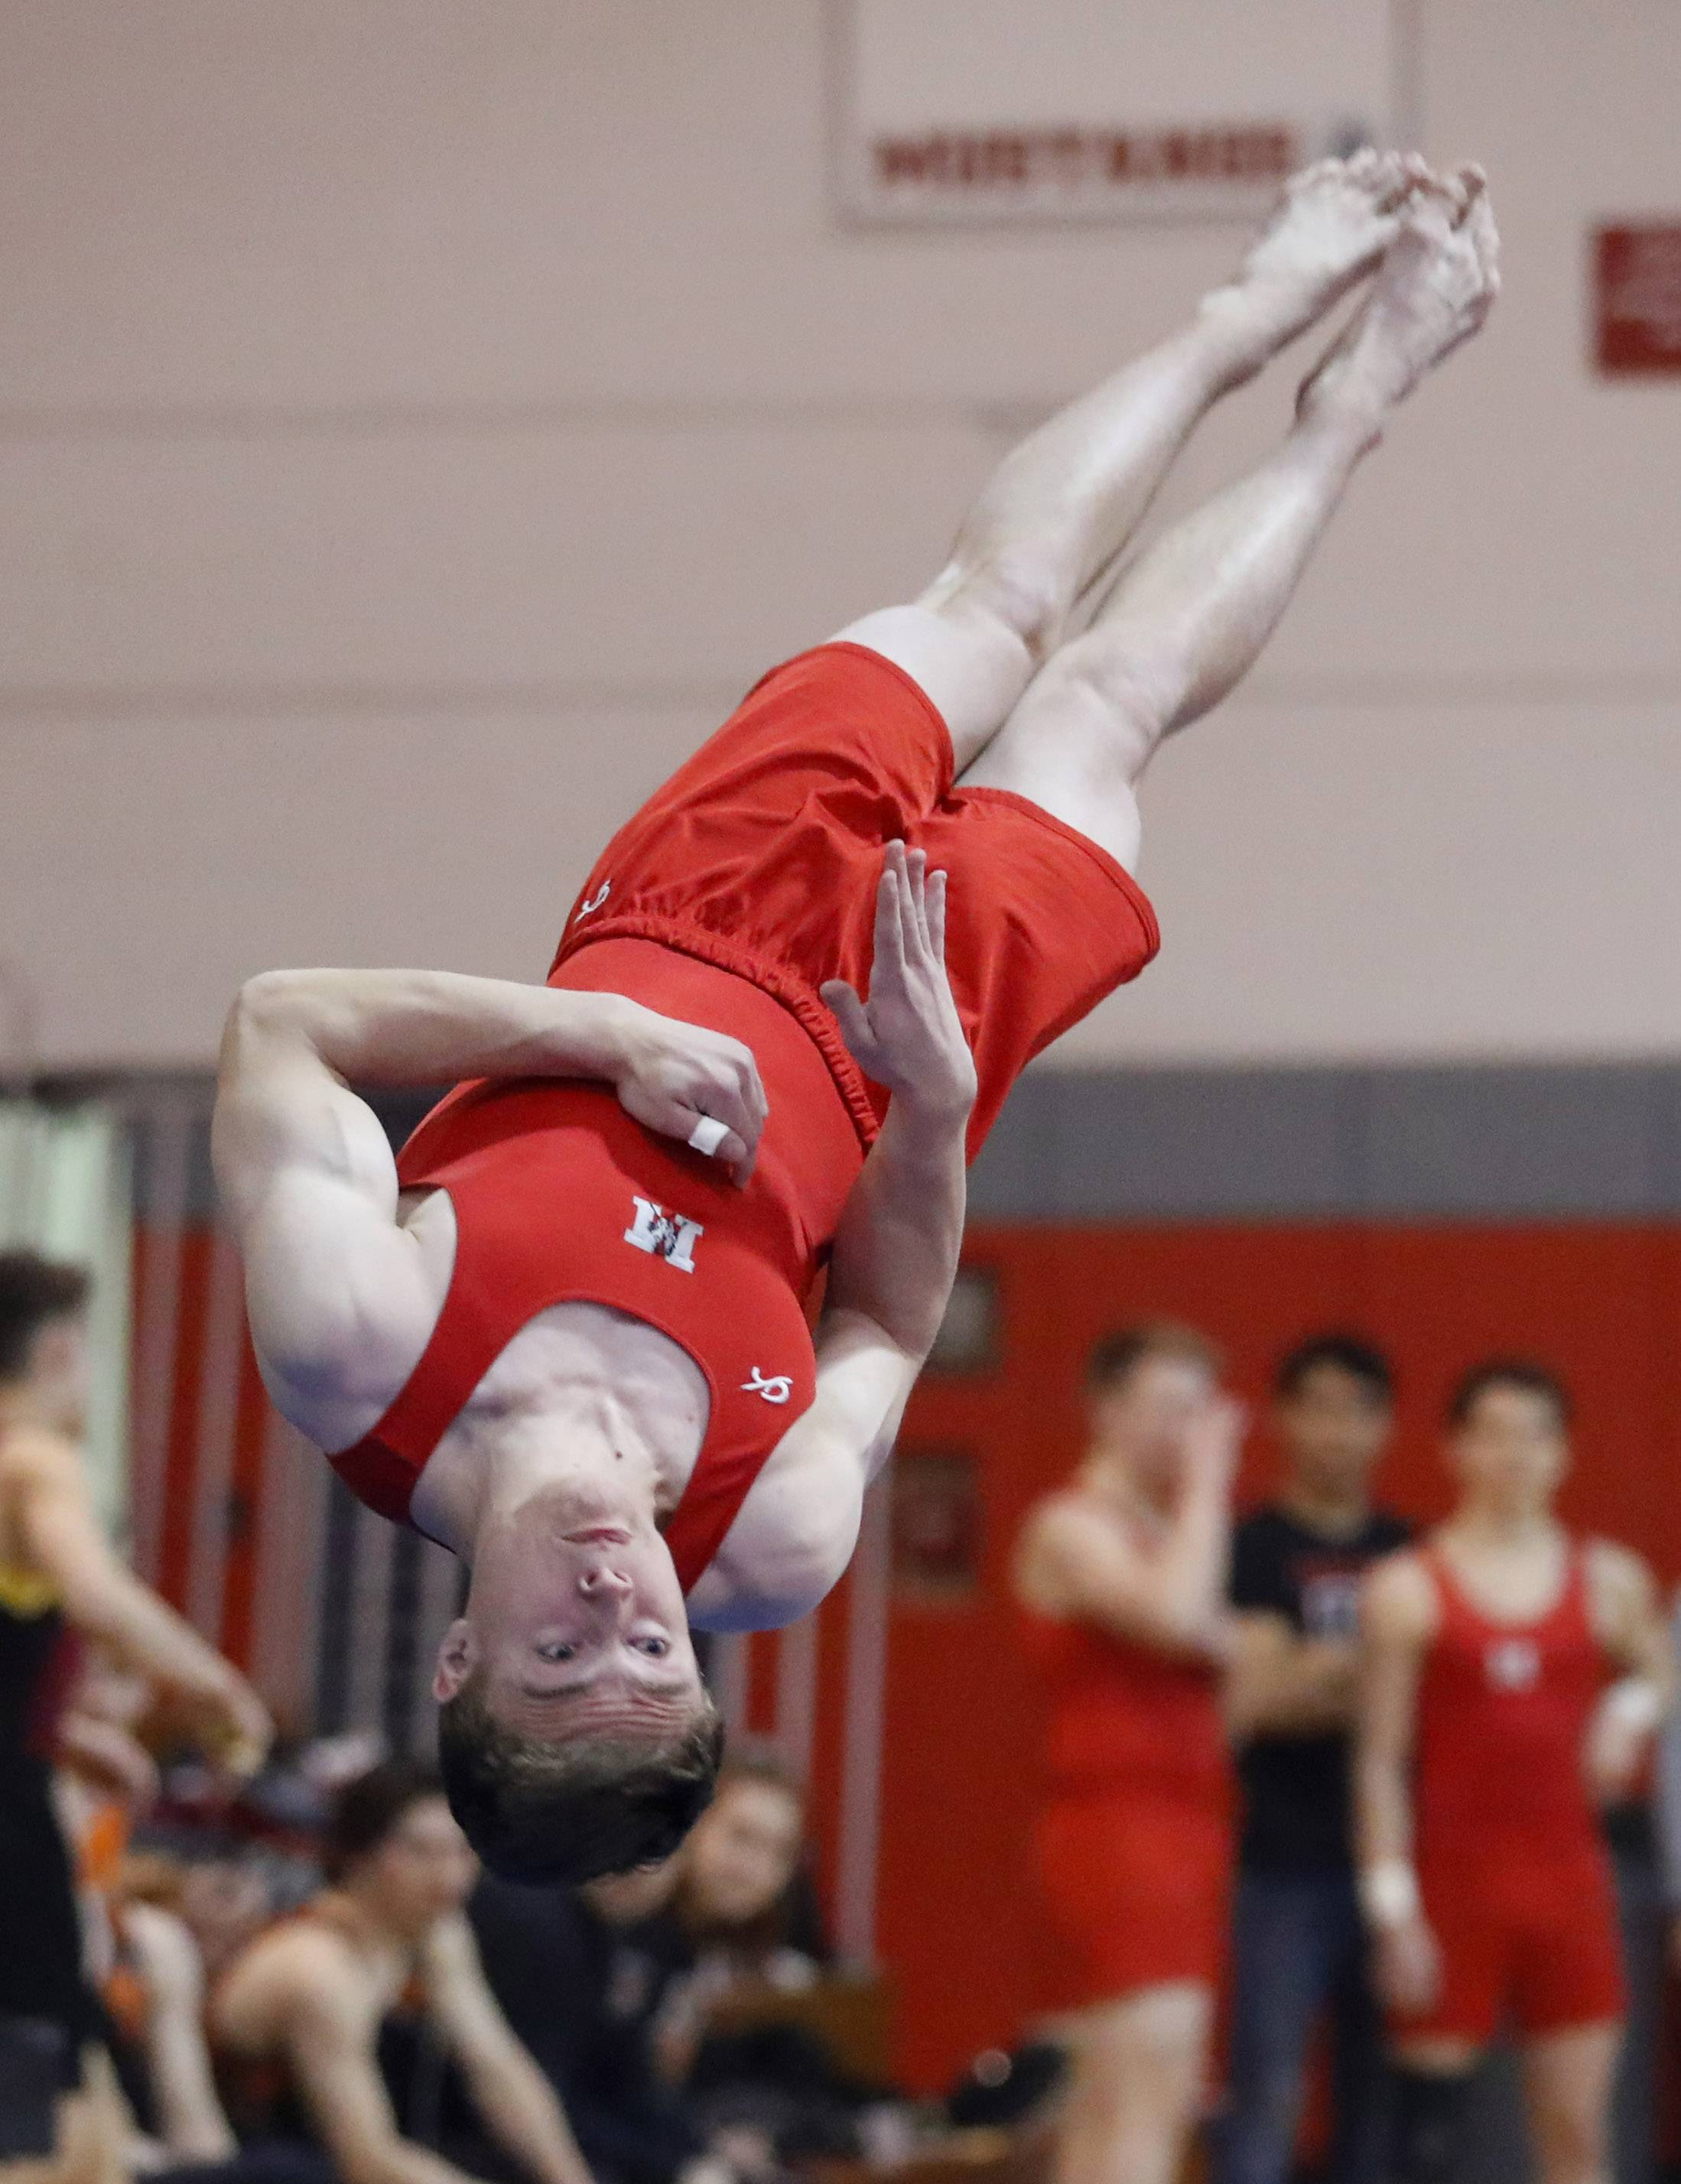 Mundelein's Will Ferro competes on the floor exercise during the Bob Bohl invite at Mundelein on Friday night.